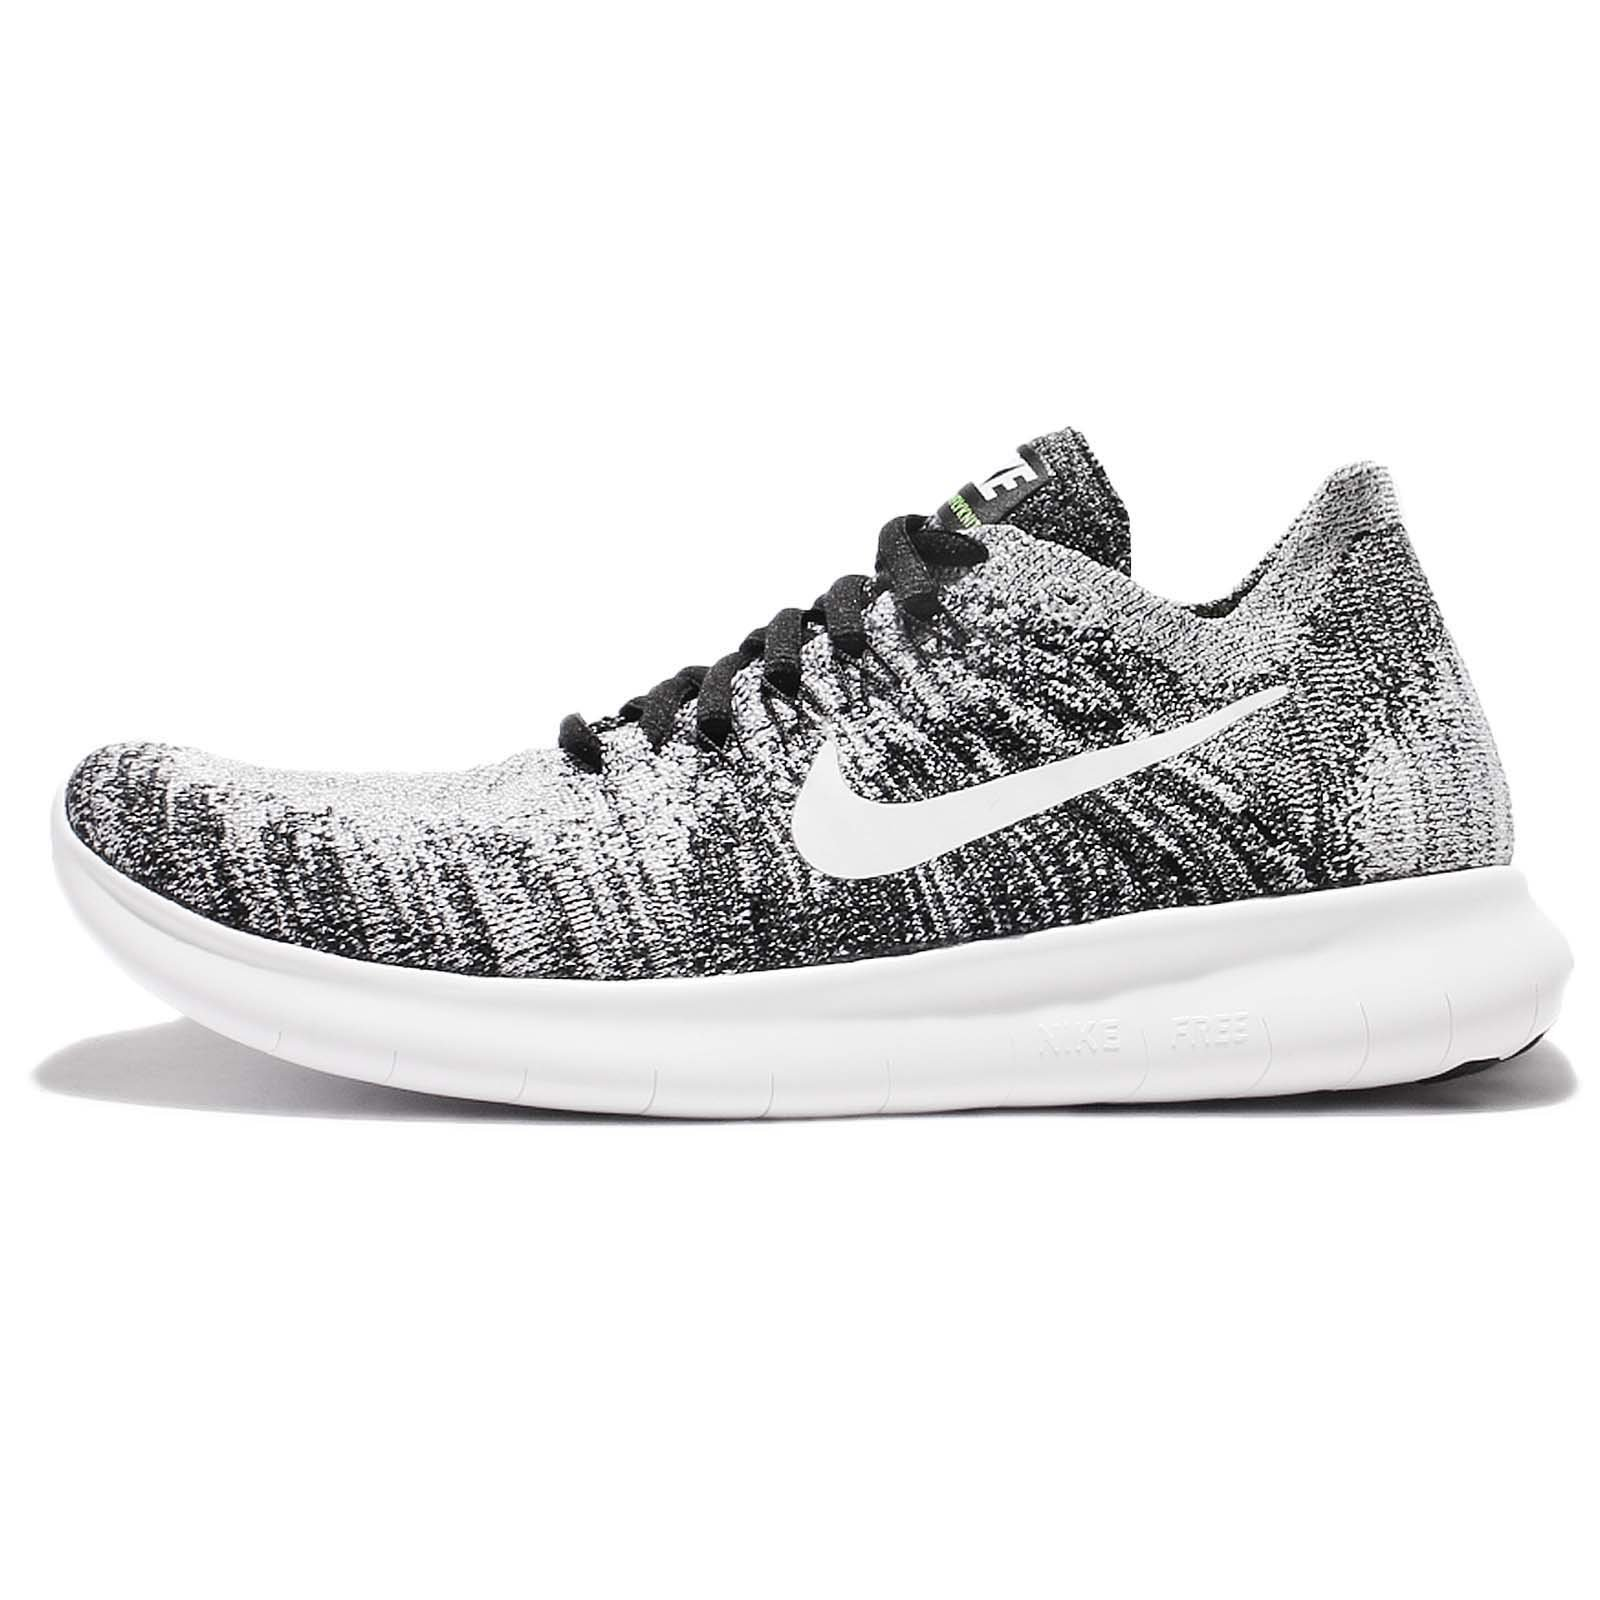 9145c9123e528 Galleon - Nike Womens Free RN Flyknit 2017 Running Shoes Black/Volt/White  880844-003 Size 9.5